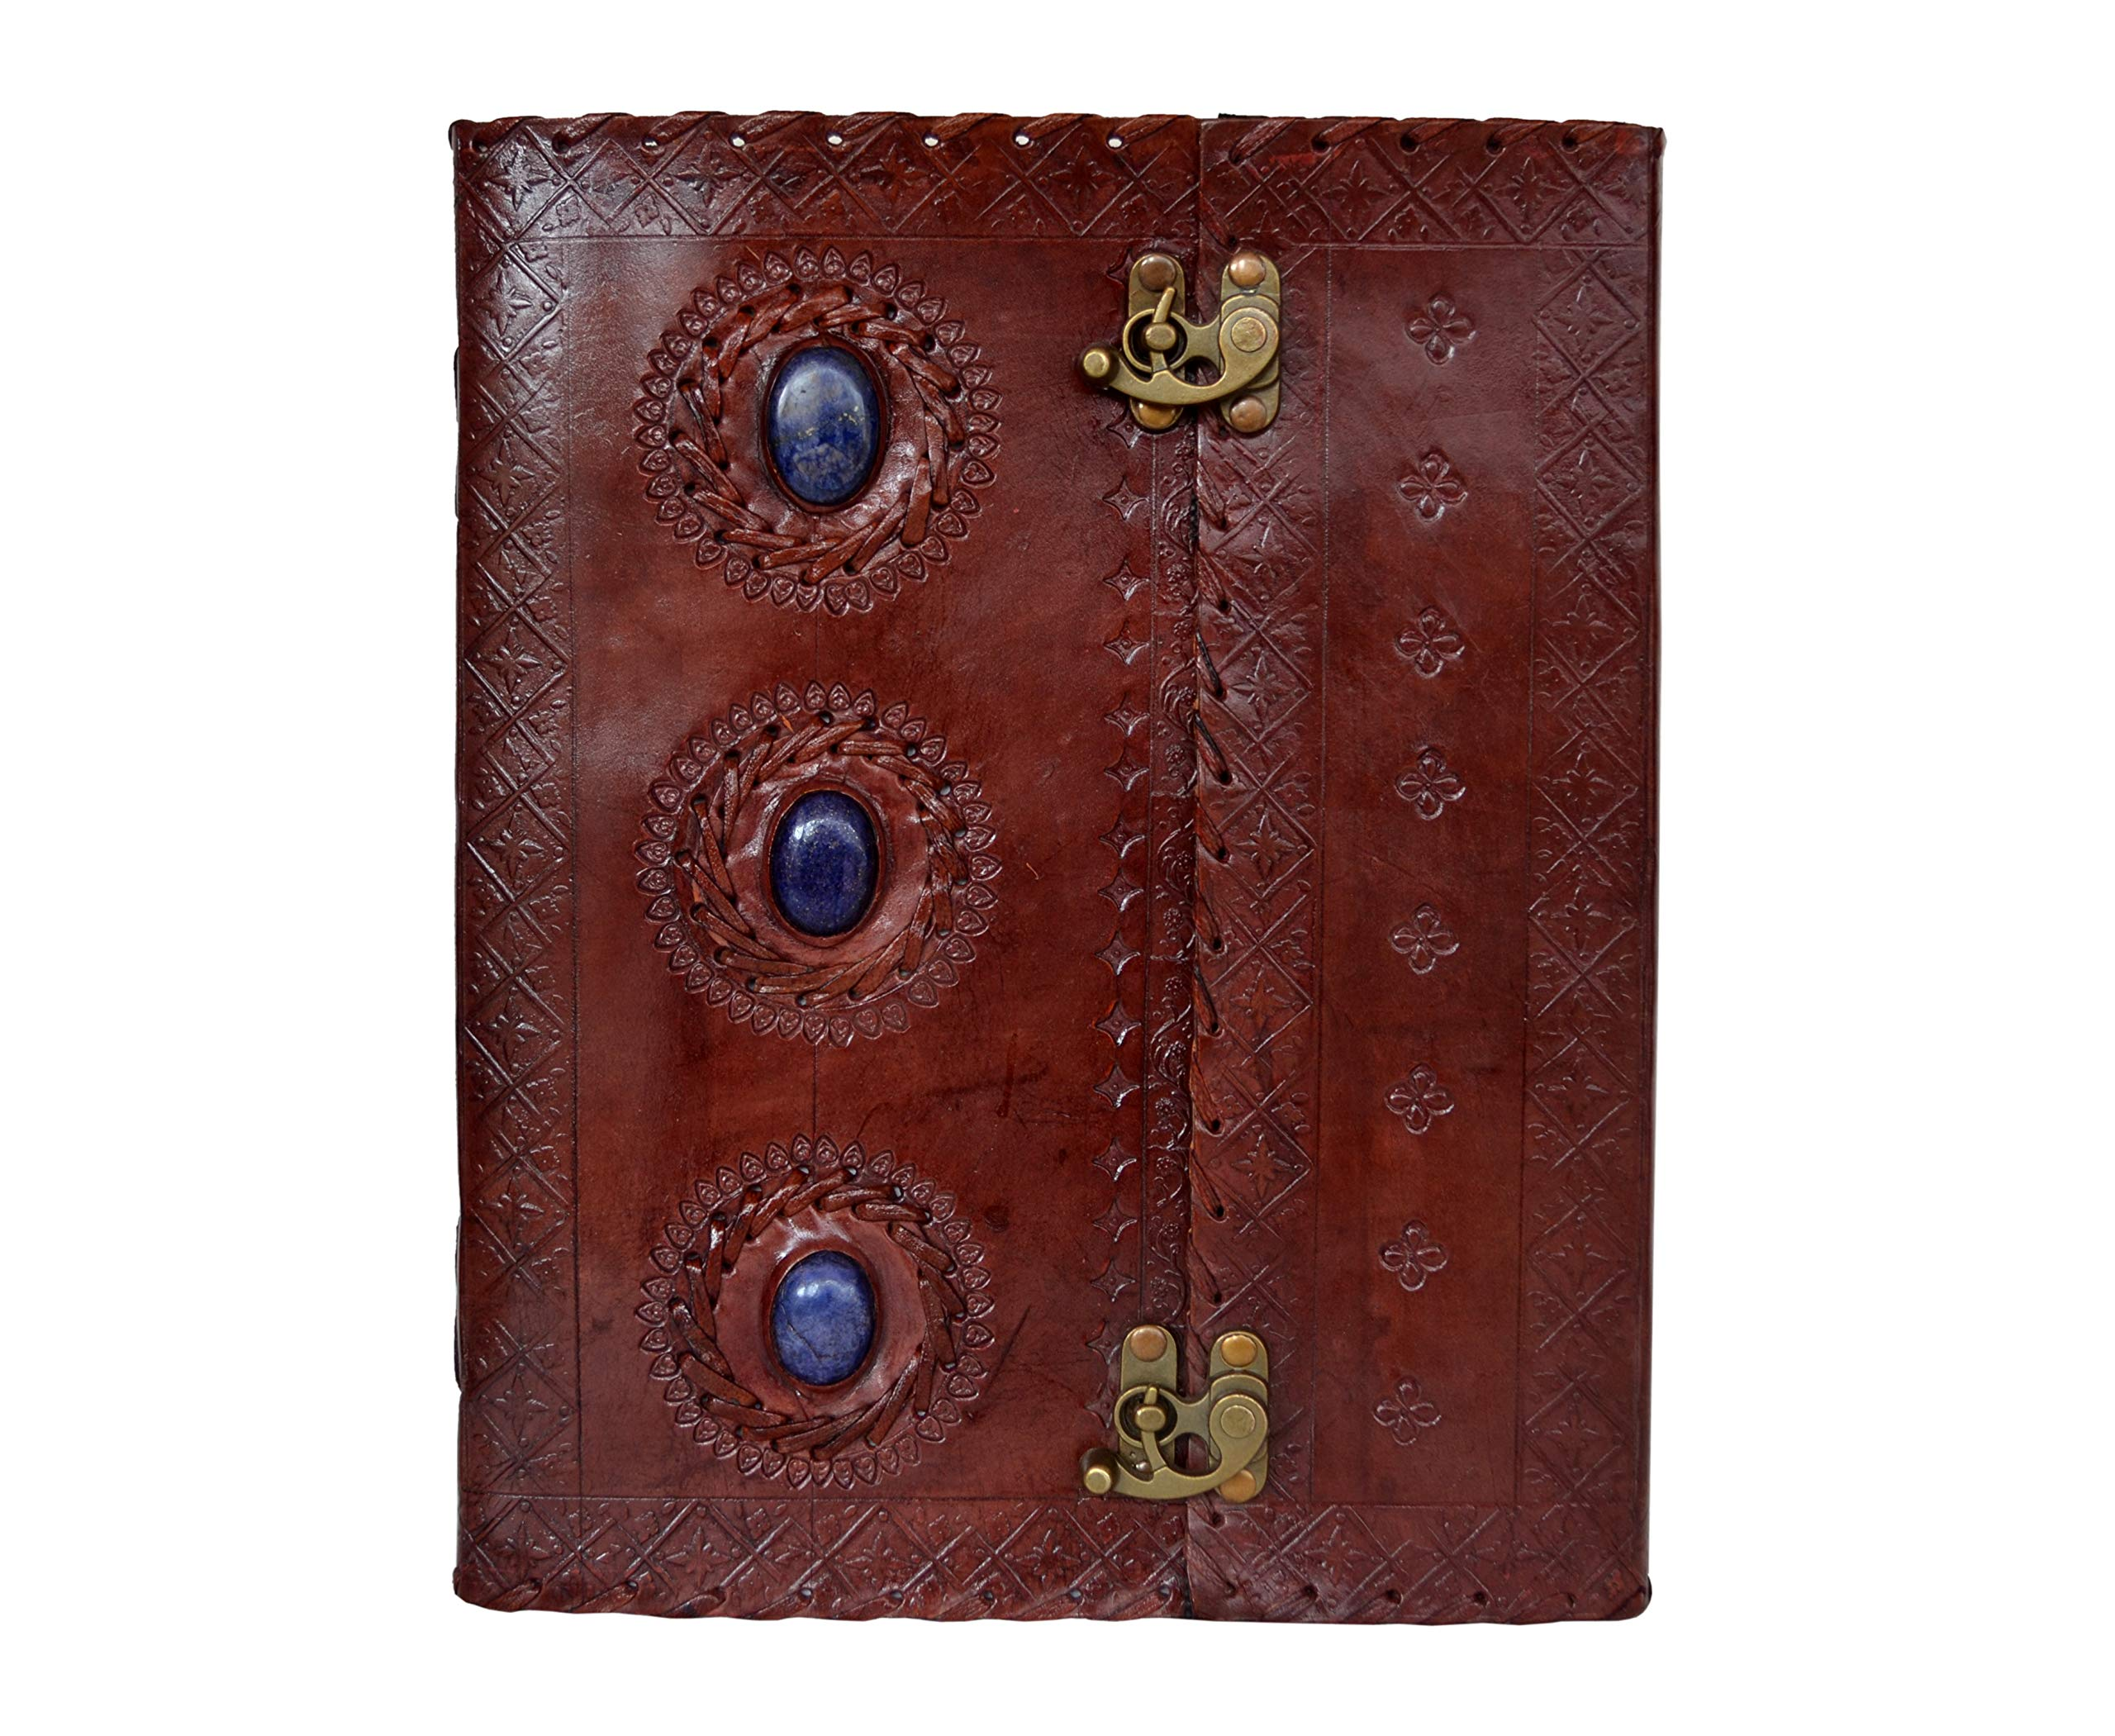 Leather Journal Handmade Three Medieval Stones Embossed Notebook Appointment Organizer Diary Day Planner College Book of Shadows Poetry Book Scheduler Sketchbook Office Supplies Large 10 x 13 Inches